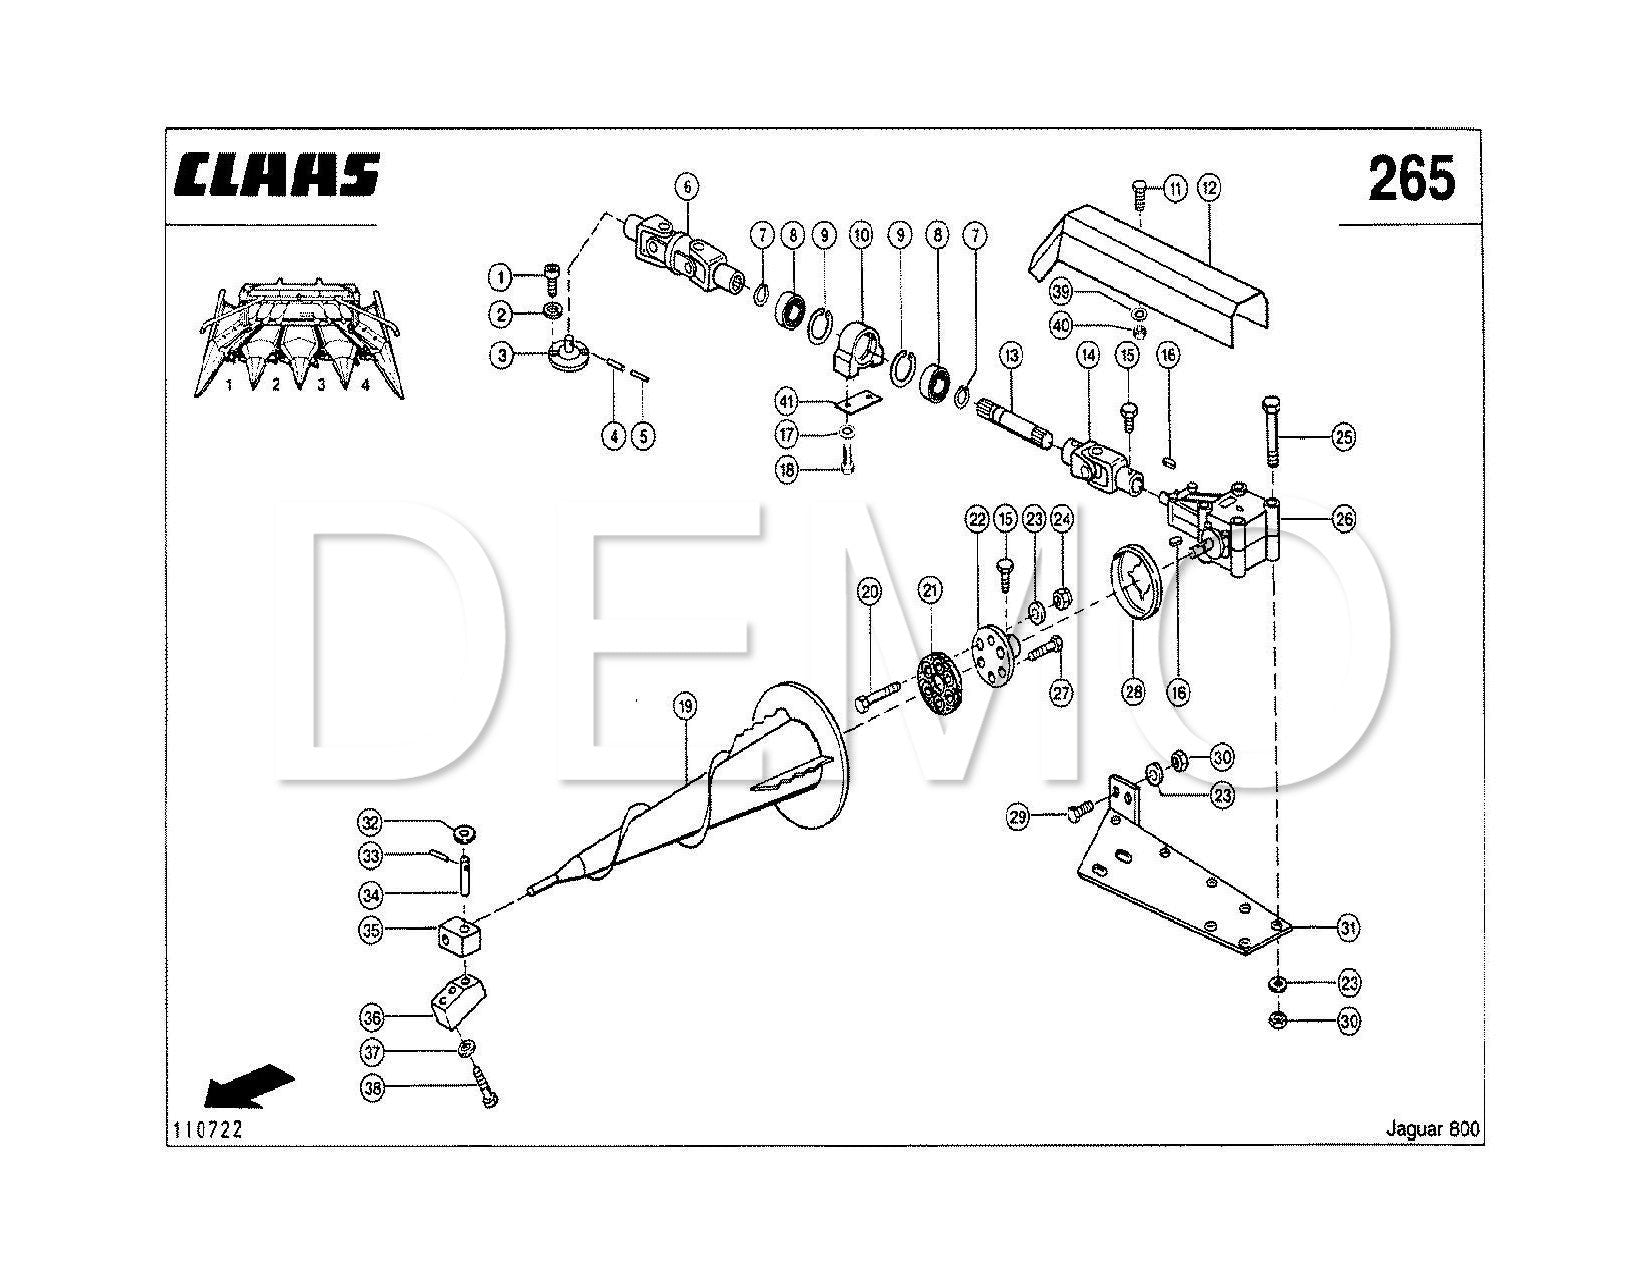 Claas Jaguar 800 Parts Catalogue, Spares List, Manual PDF